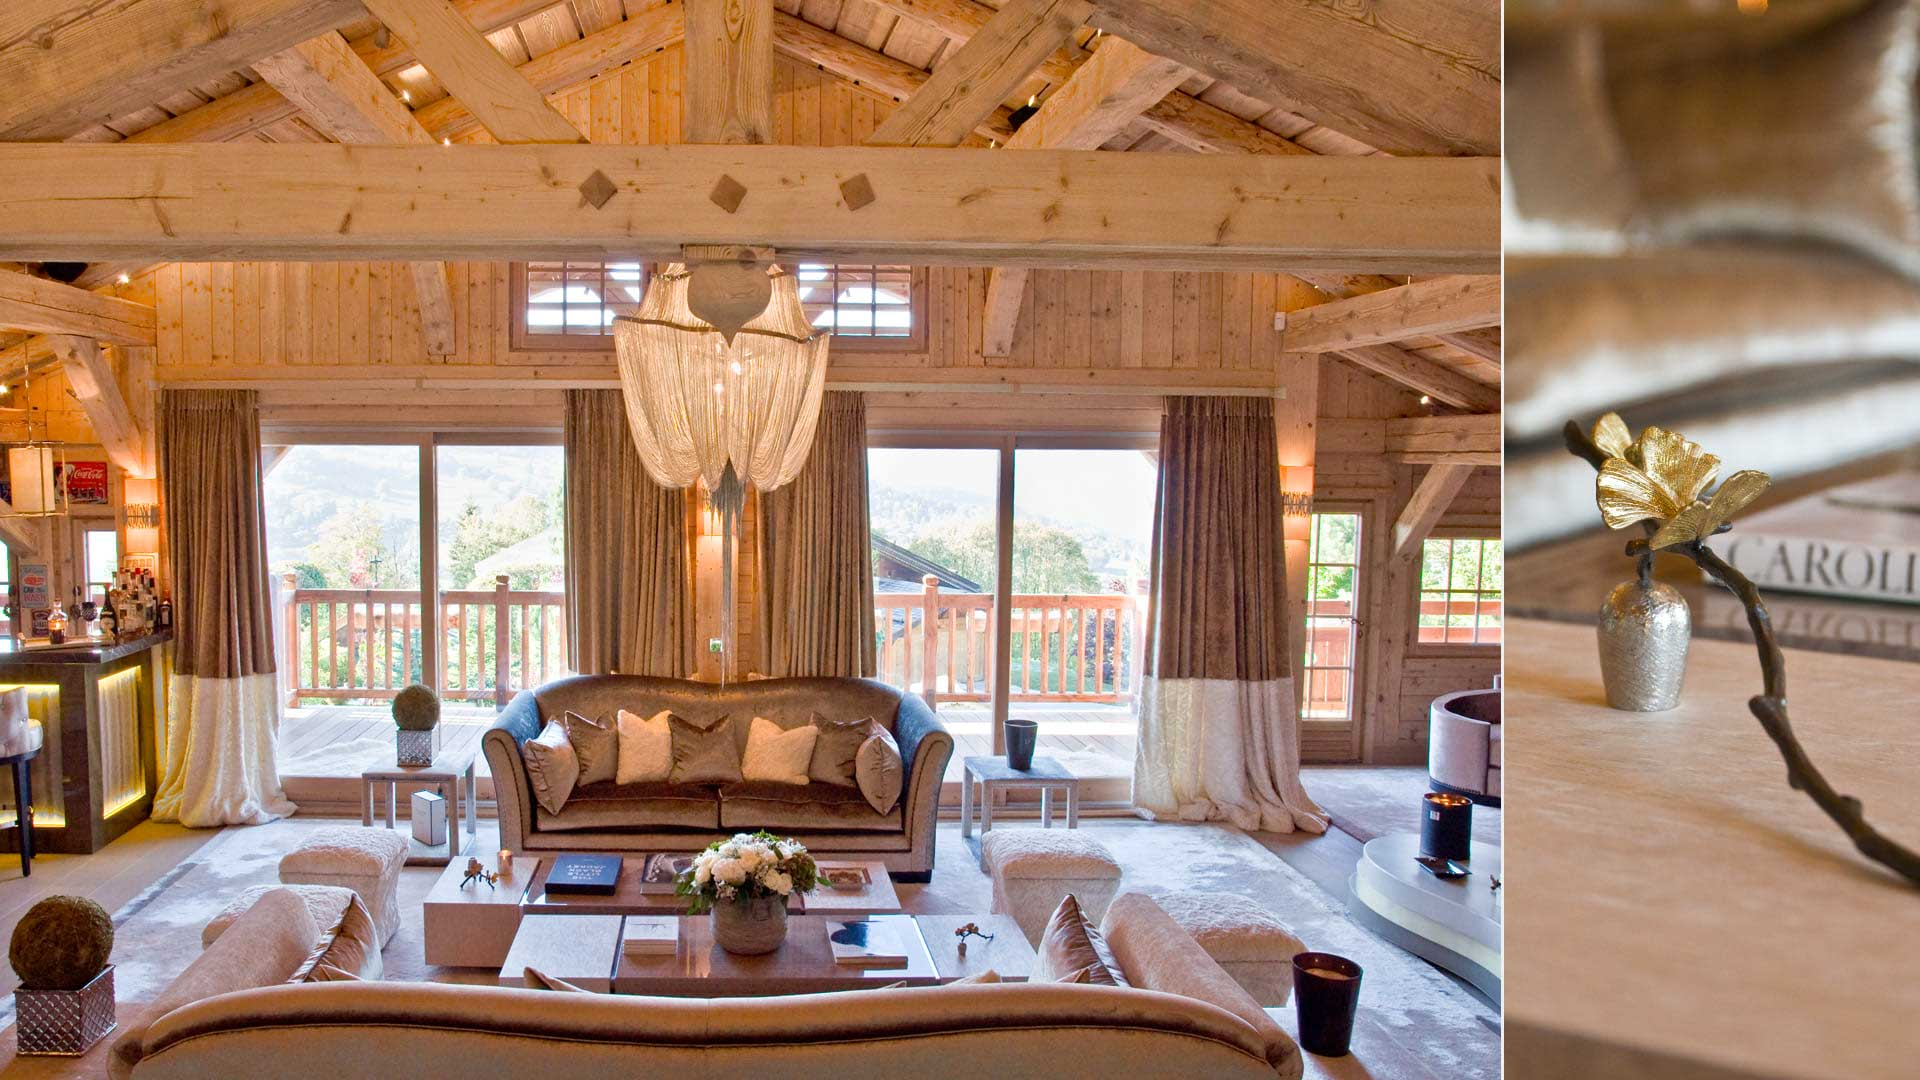 CHALET-FRENCH-ALPS-02-Dome-interior-design-Geneve-Suisse